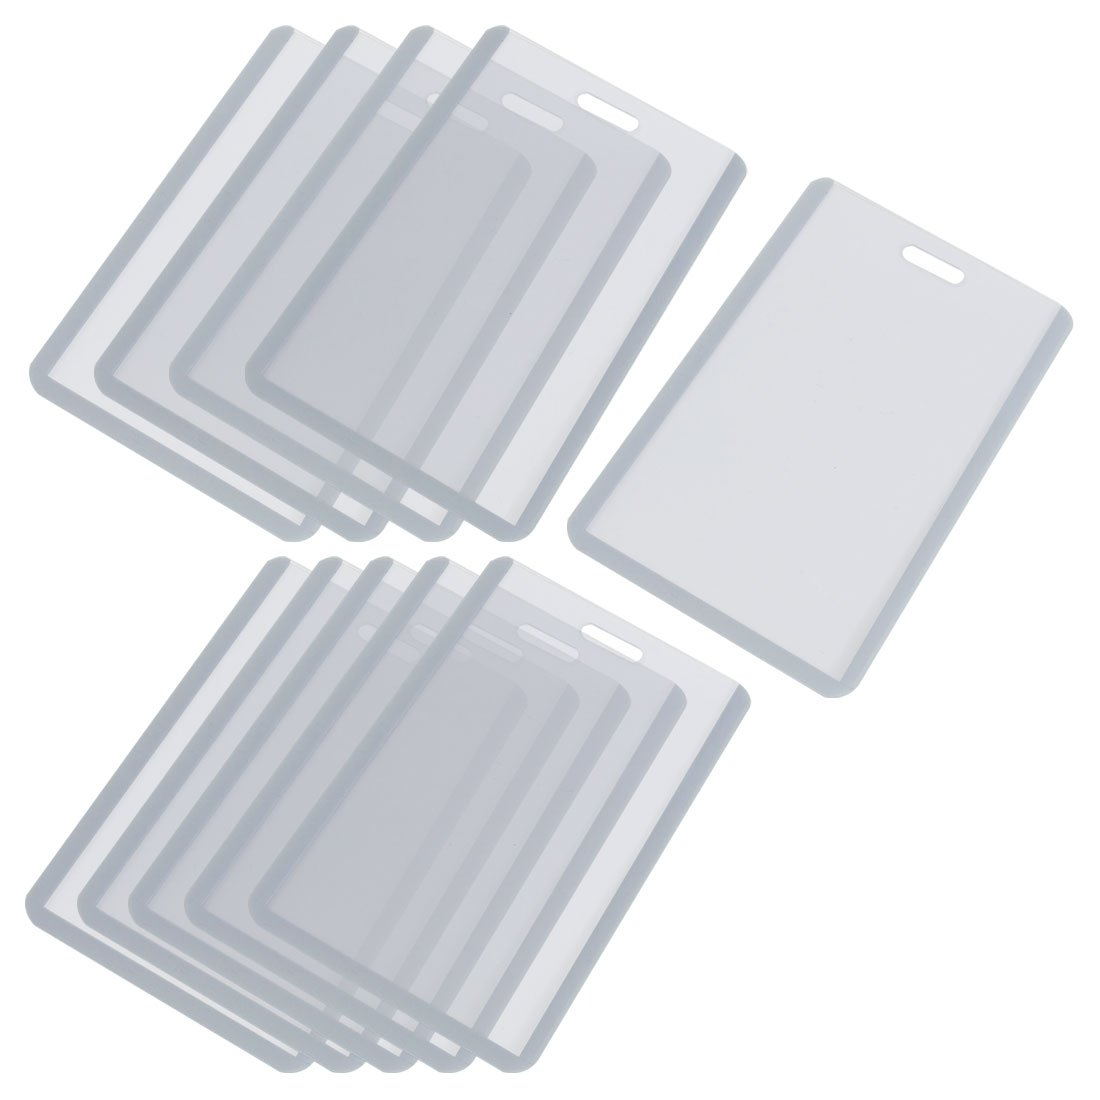 Sosw vertical business id badge card holder 10 pcs gray clear in aeproducttsubject colourmoves